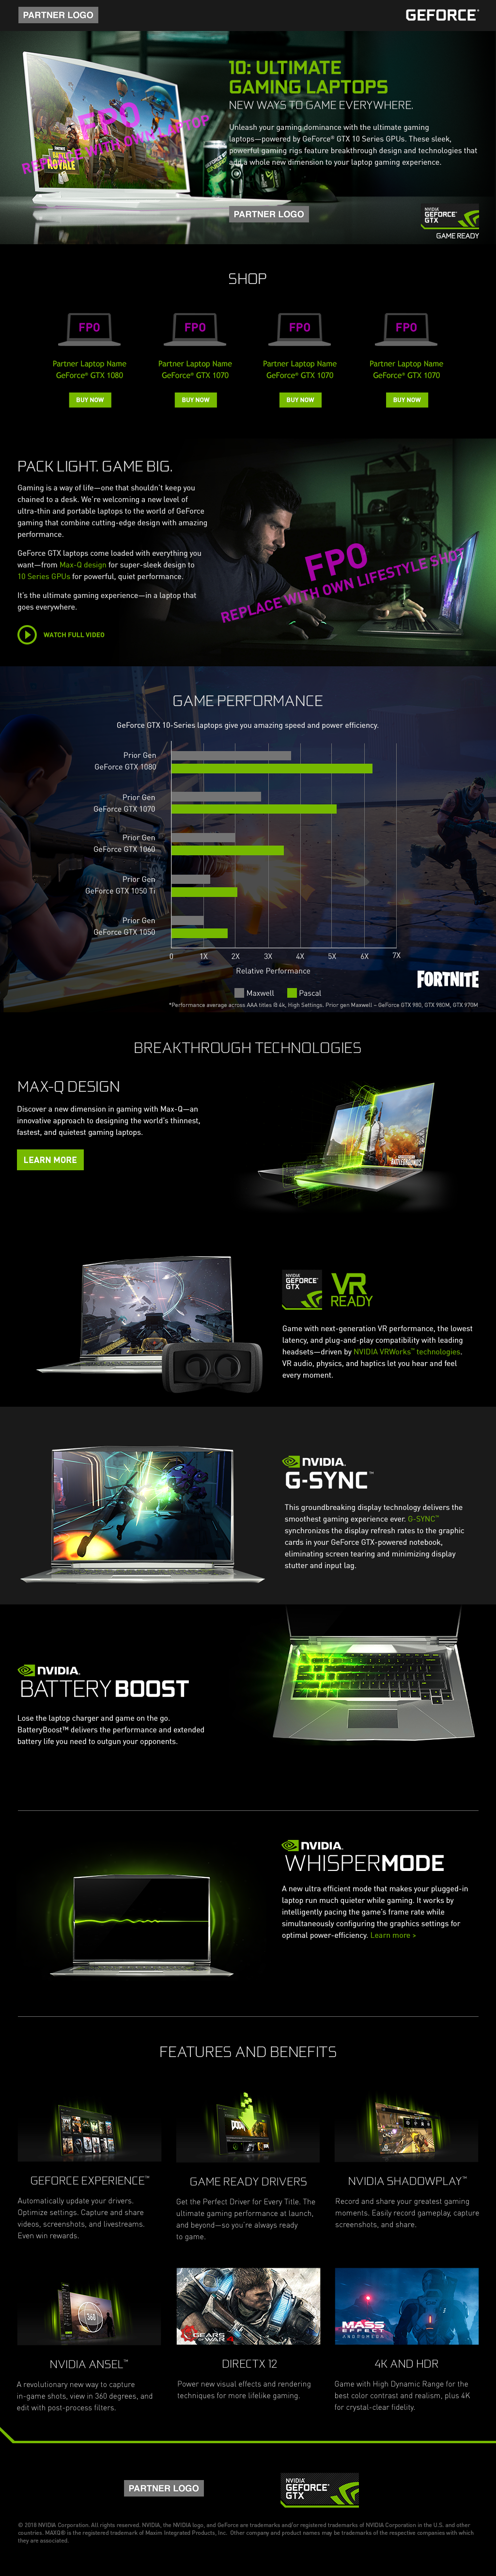 geforce-10series-laptop-partner-lp-desktop.png